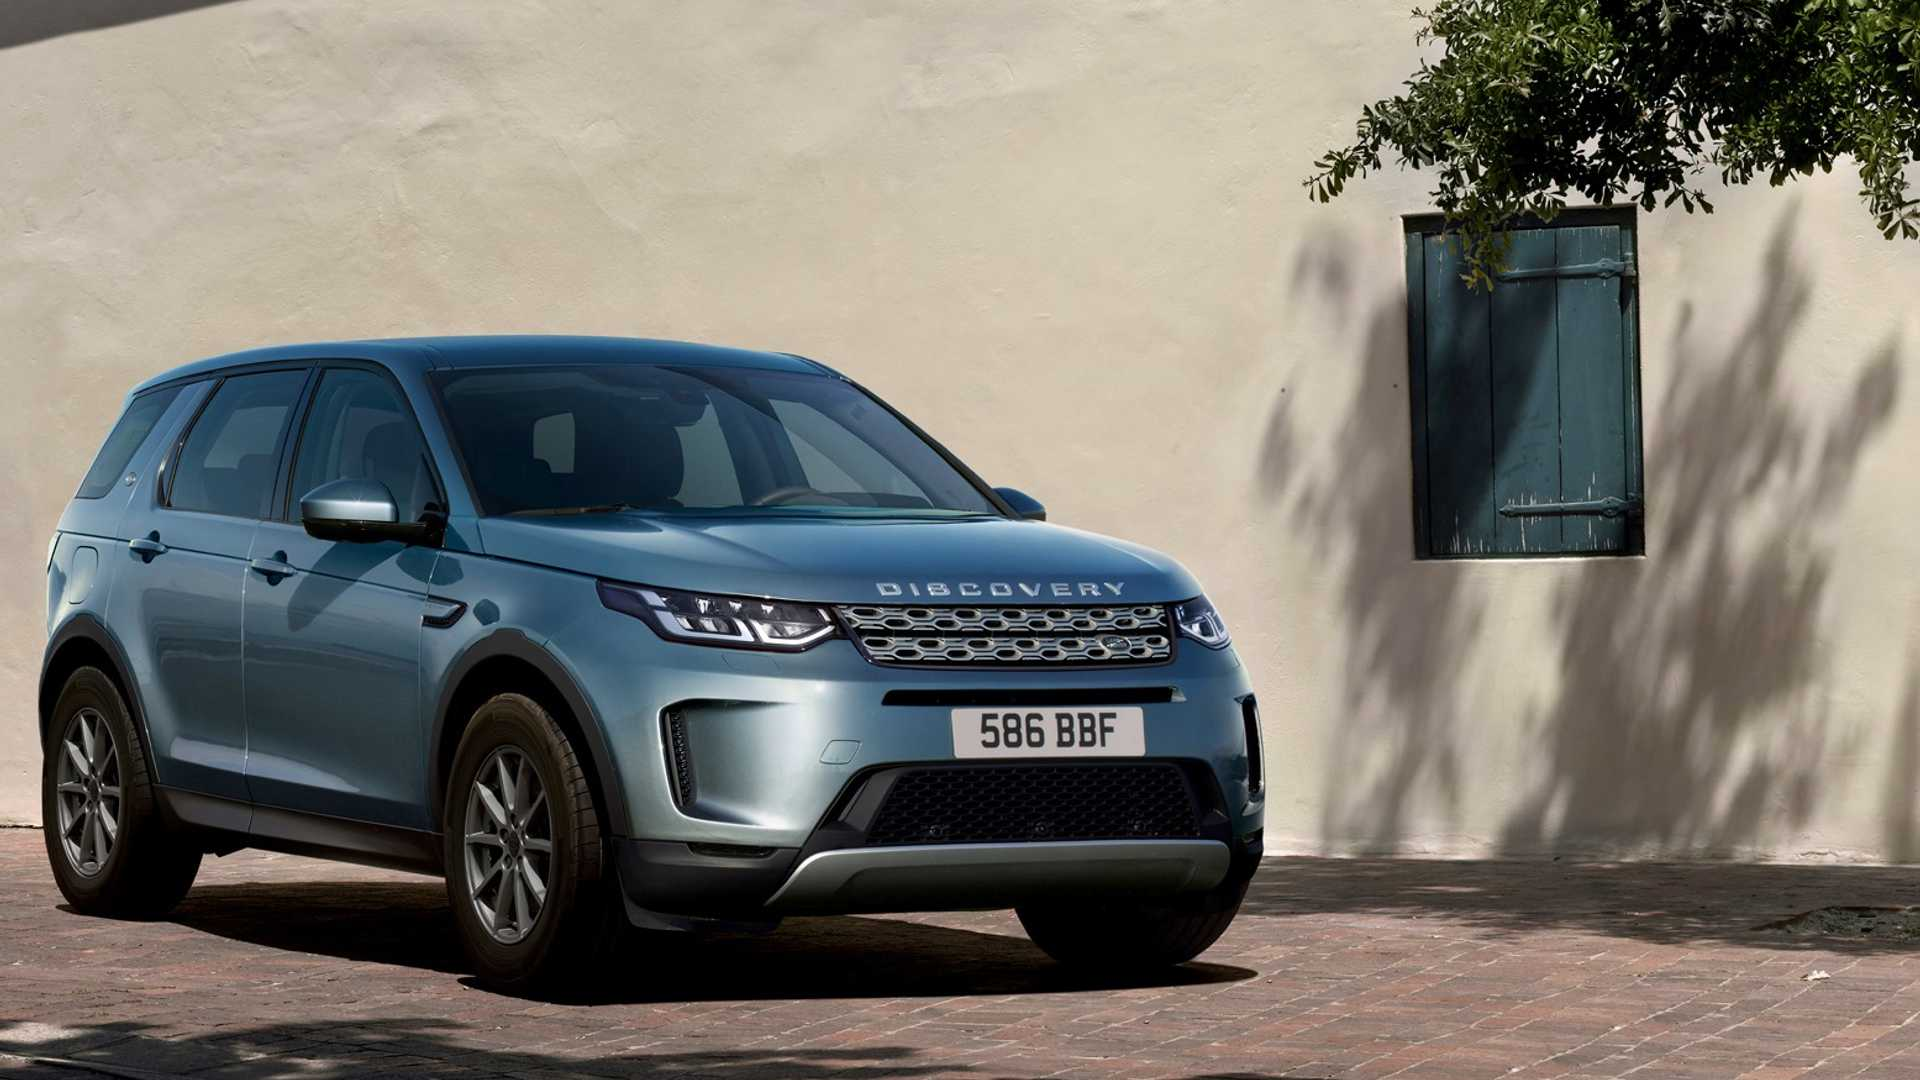 2020-land-rover-discovery-sport (31).jpg